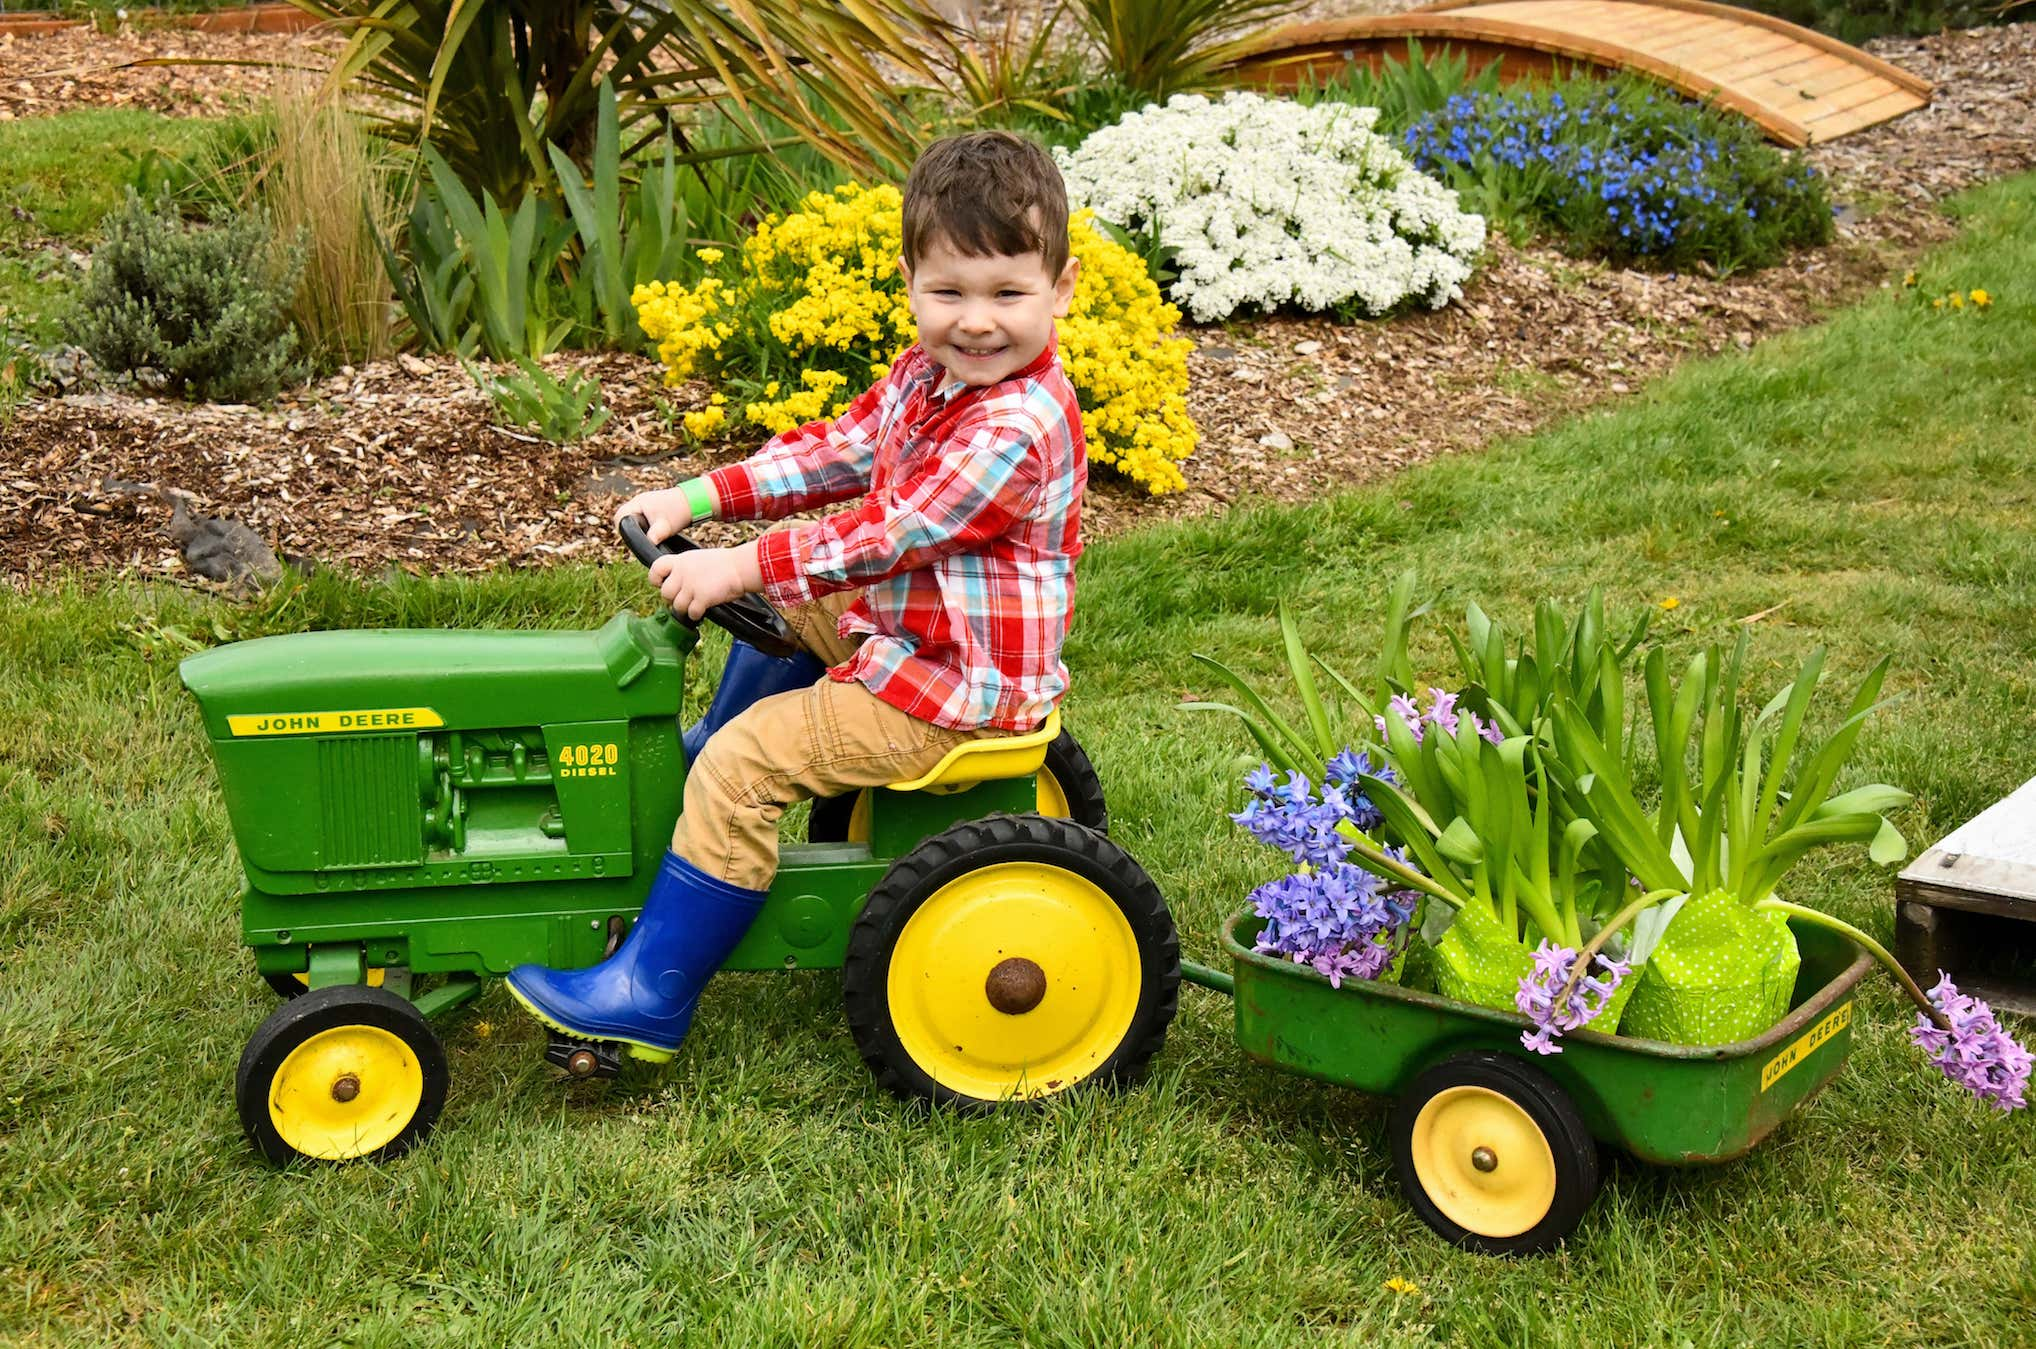 Kid Riding Toy Tractor On Green Lawn